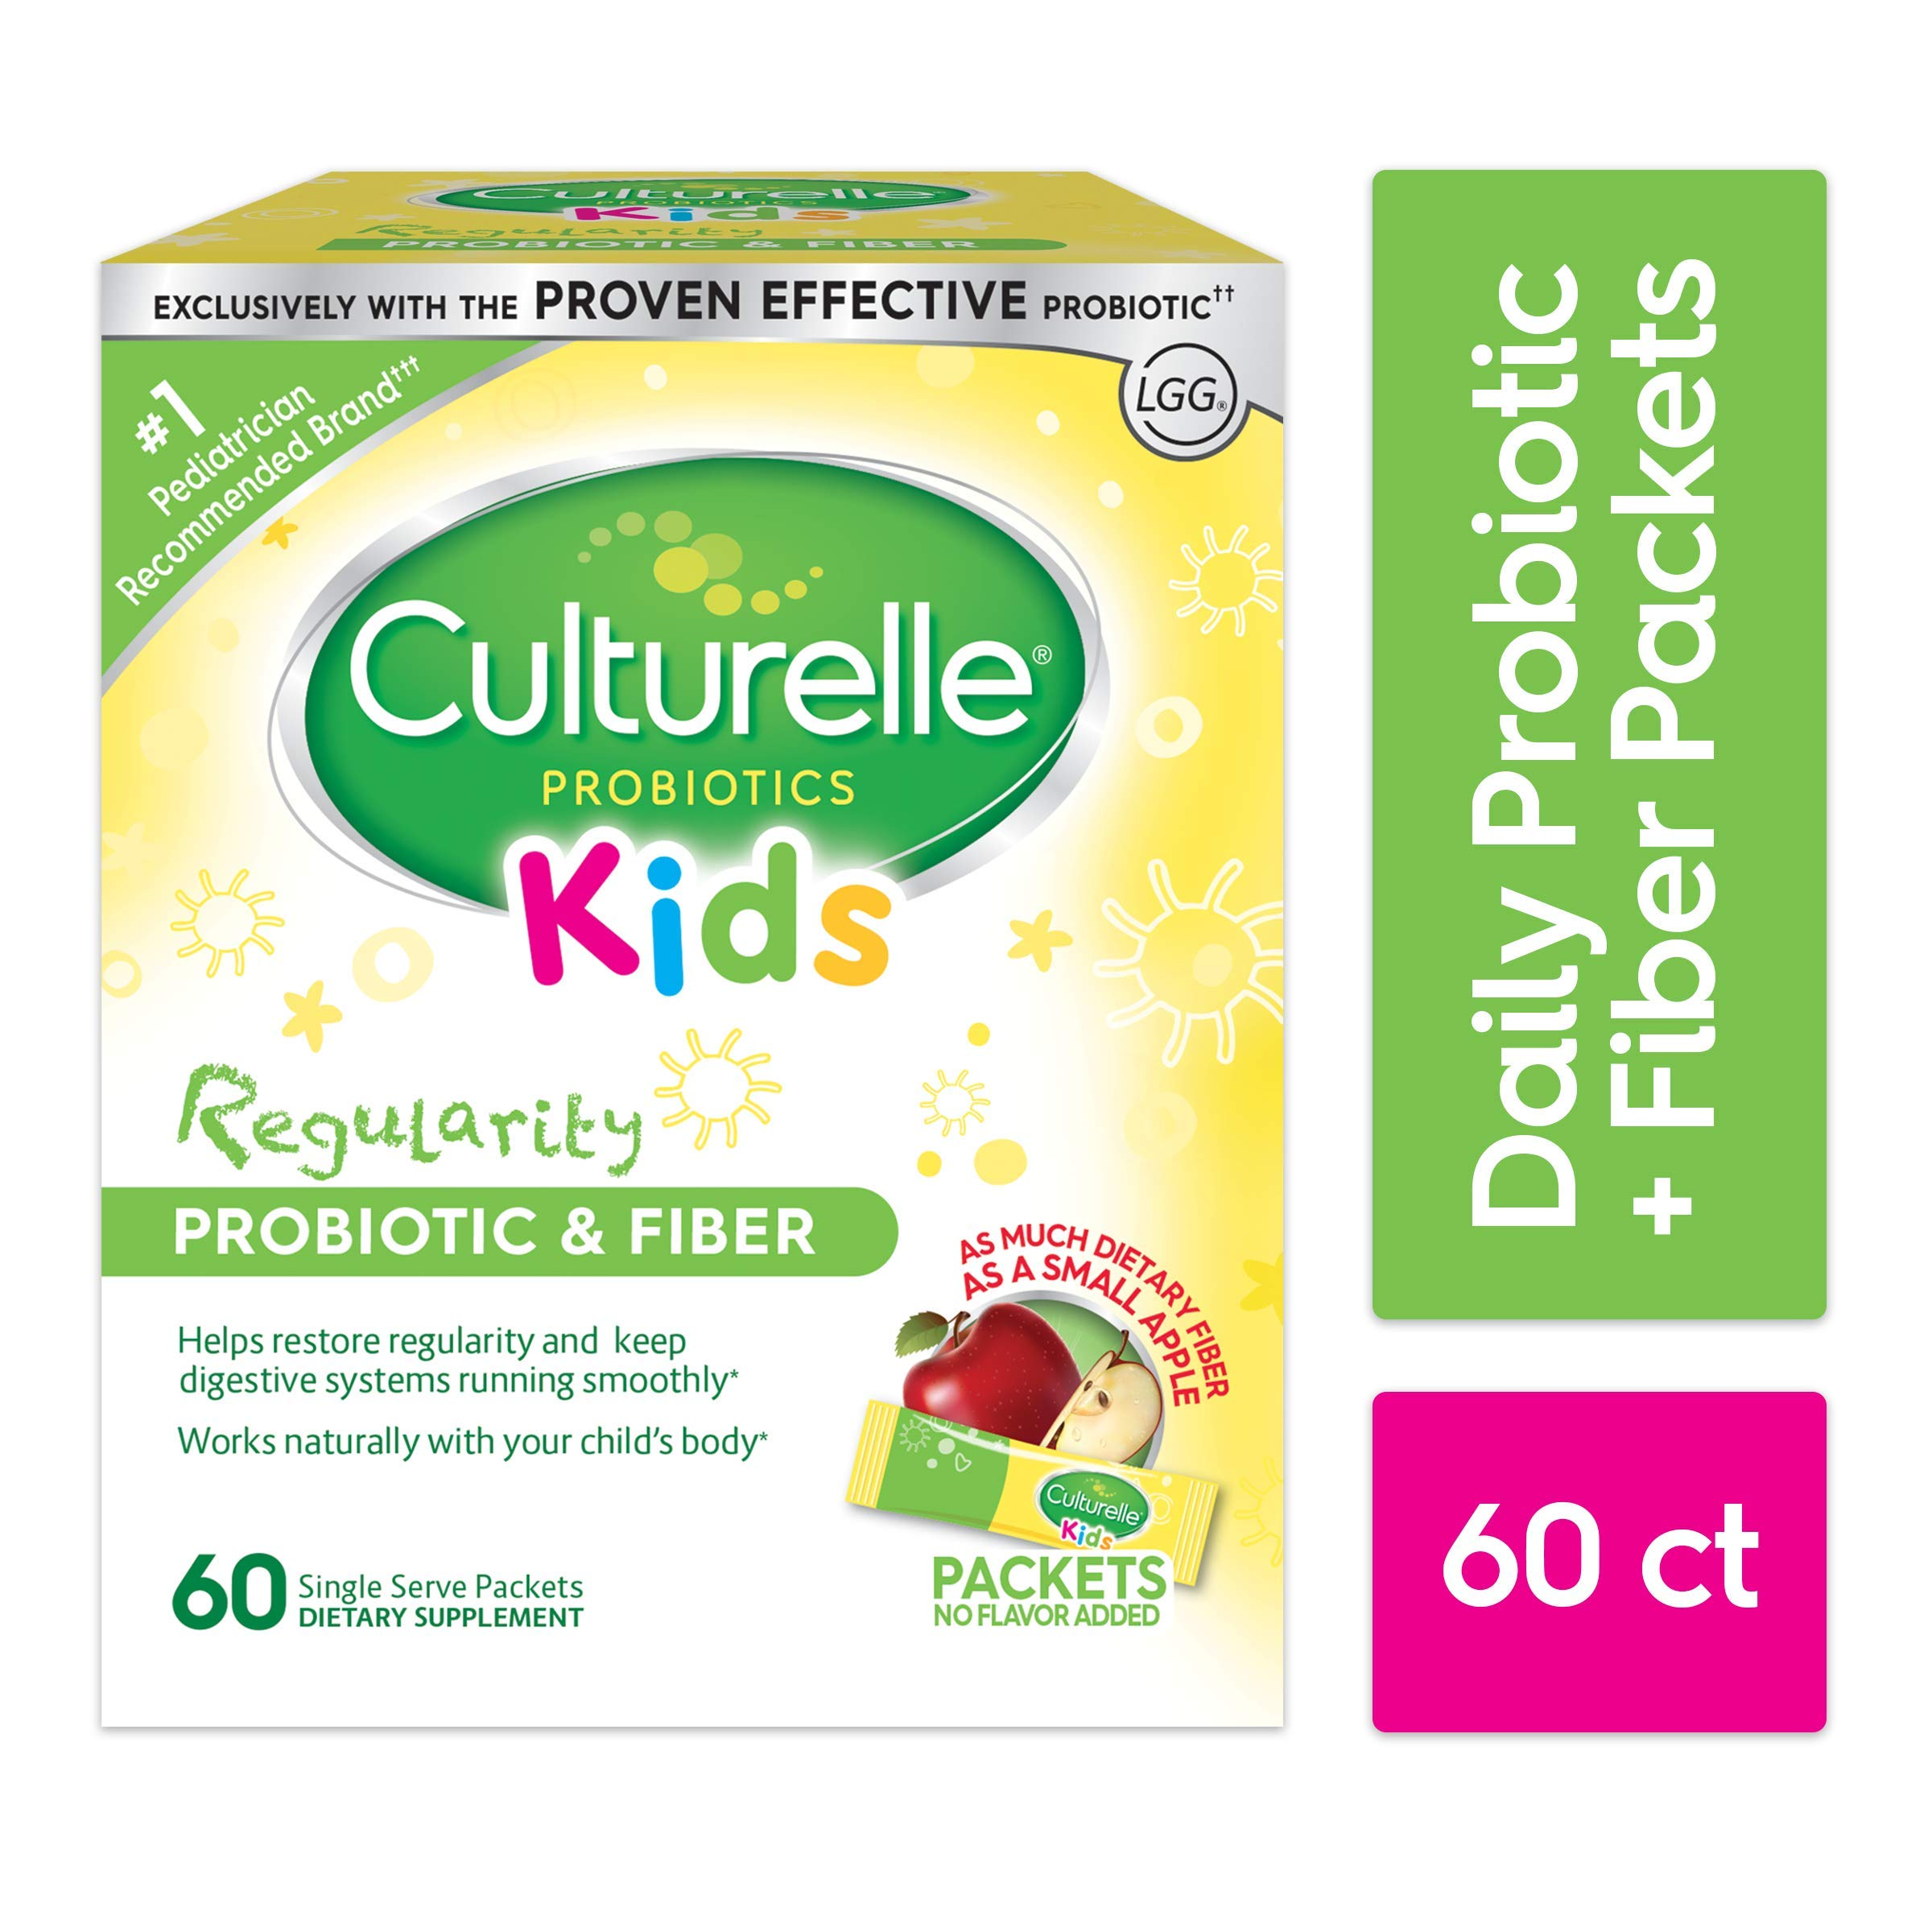 Culturelle Kids Regularity Probiotic & Fiber Dietary Supplement | Helps Restore Regularity & Keeps Kids' Digestive Systems Running Smoothly* | Works Naturally with Child's Body* | 60 Single Packets by Culturelle